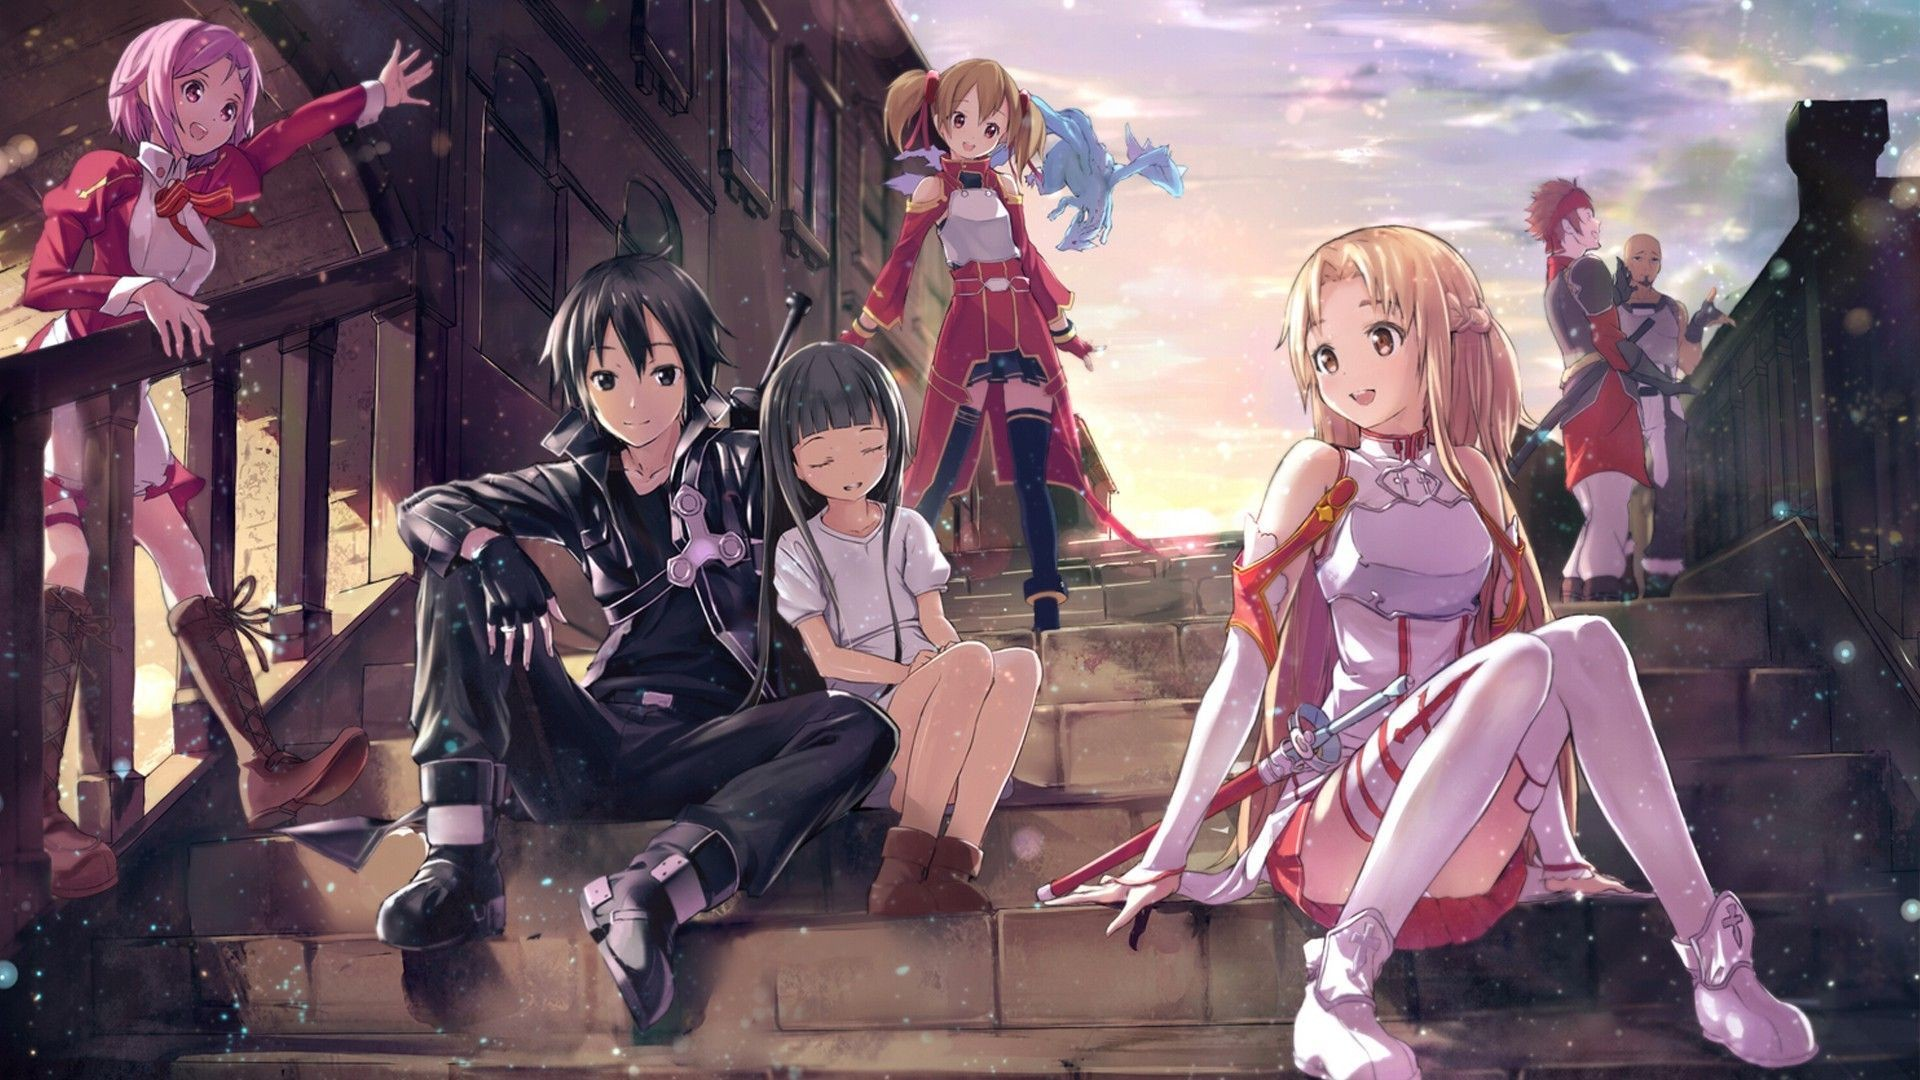 Sword Art Online Hd Wallpapers New Tab Theme Playtime